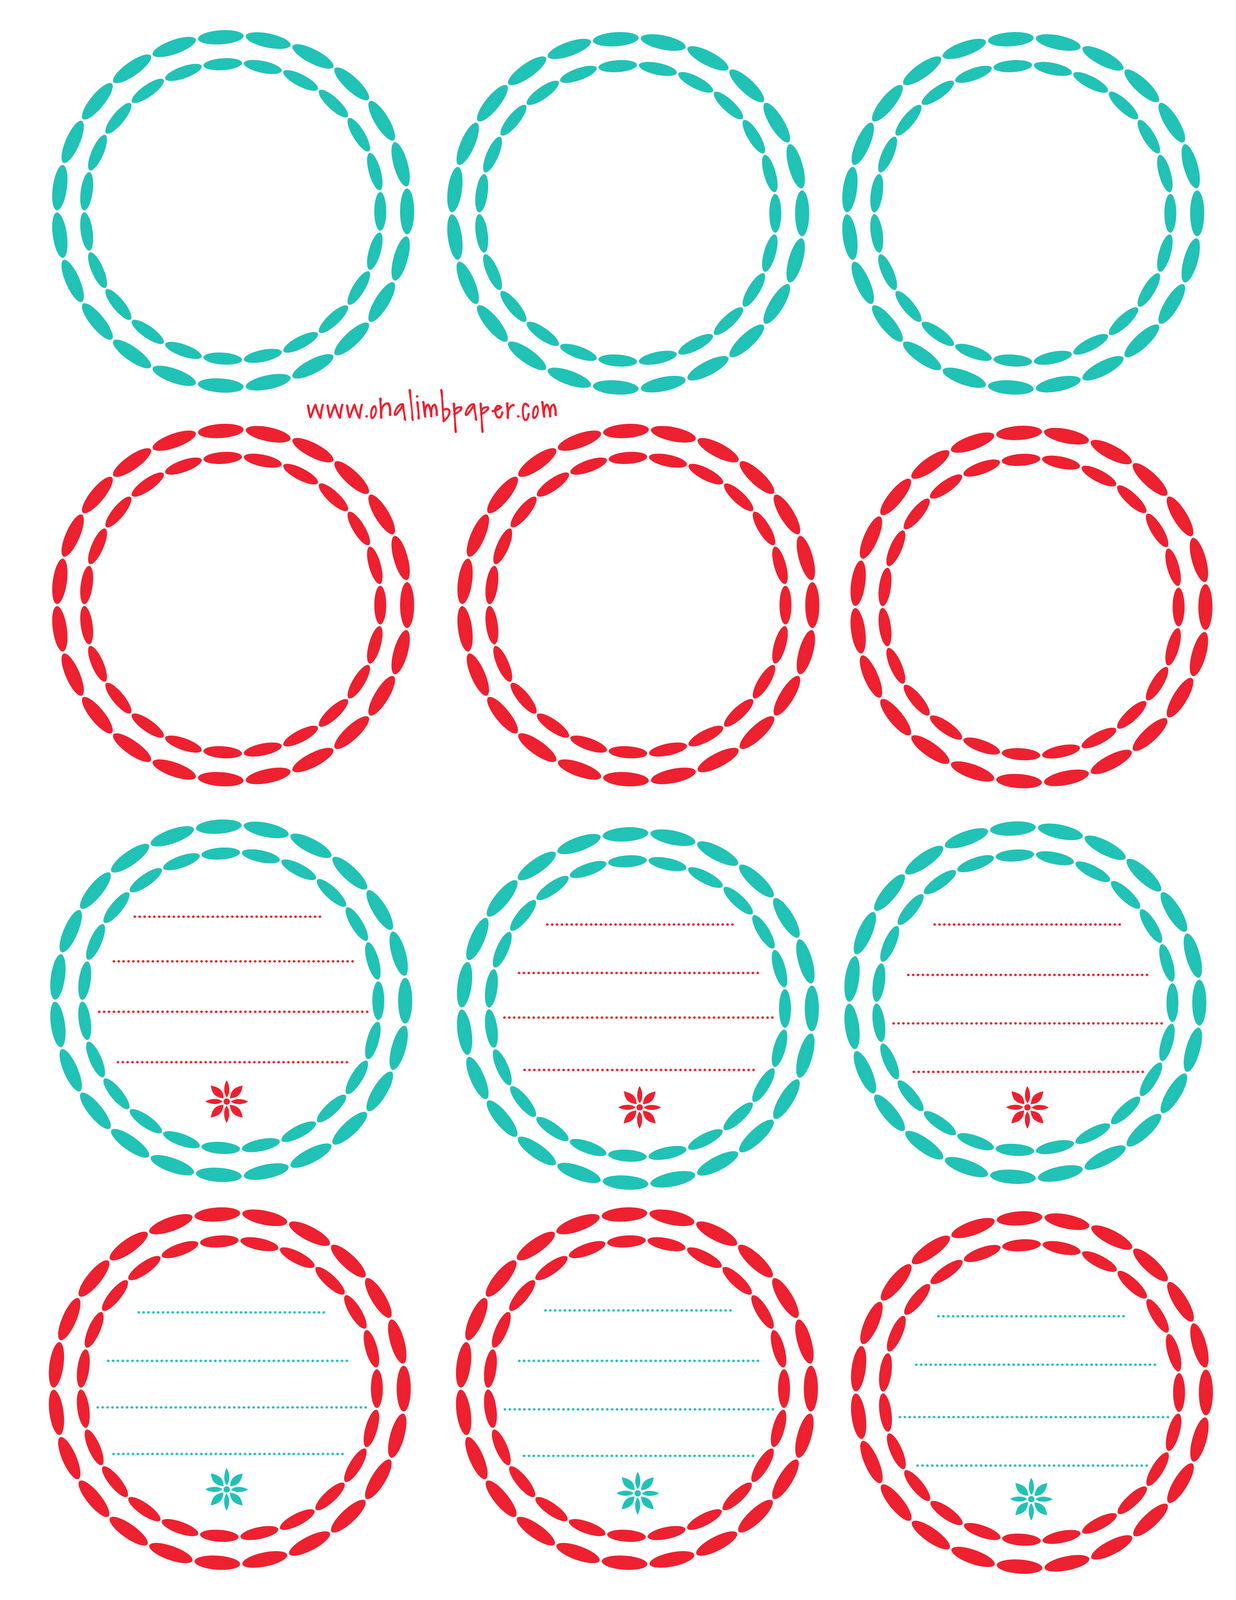 9 Images of Free Printable Favor Circle Tags